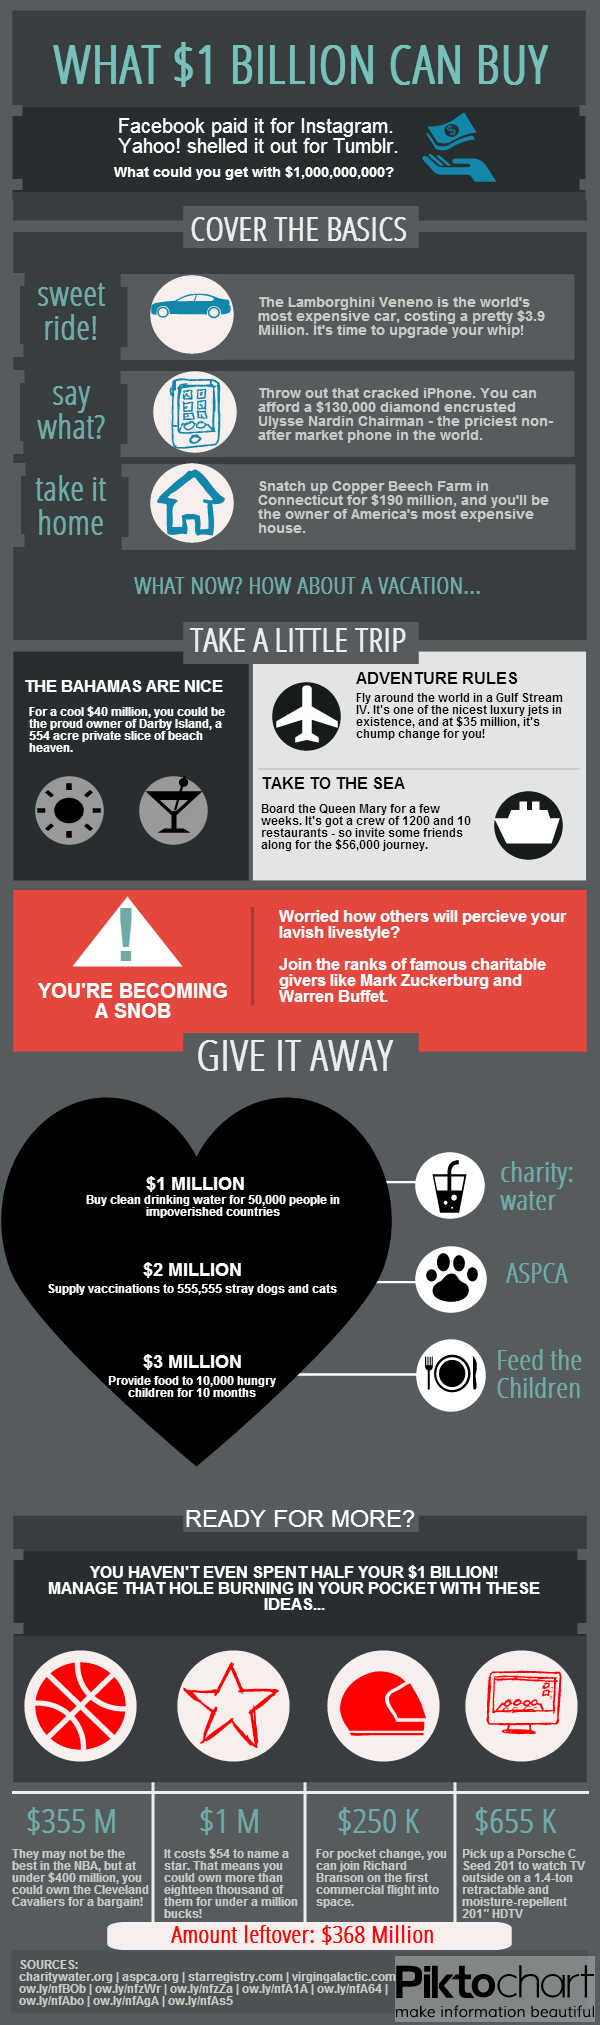 What Can $1,000,000,000 Buy? [Infographic]